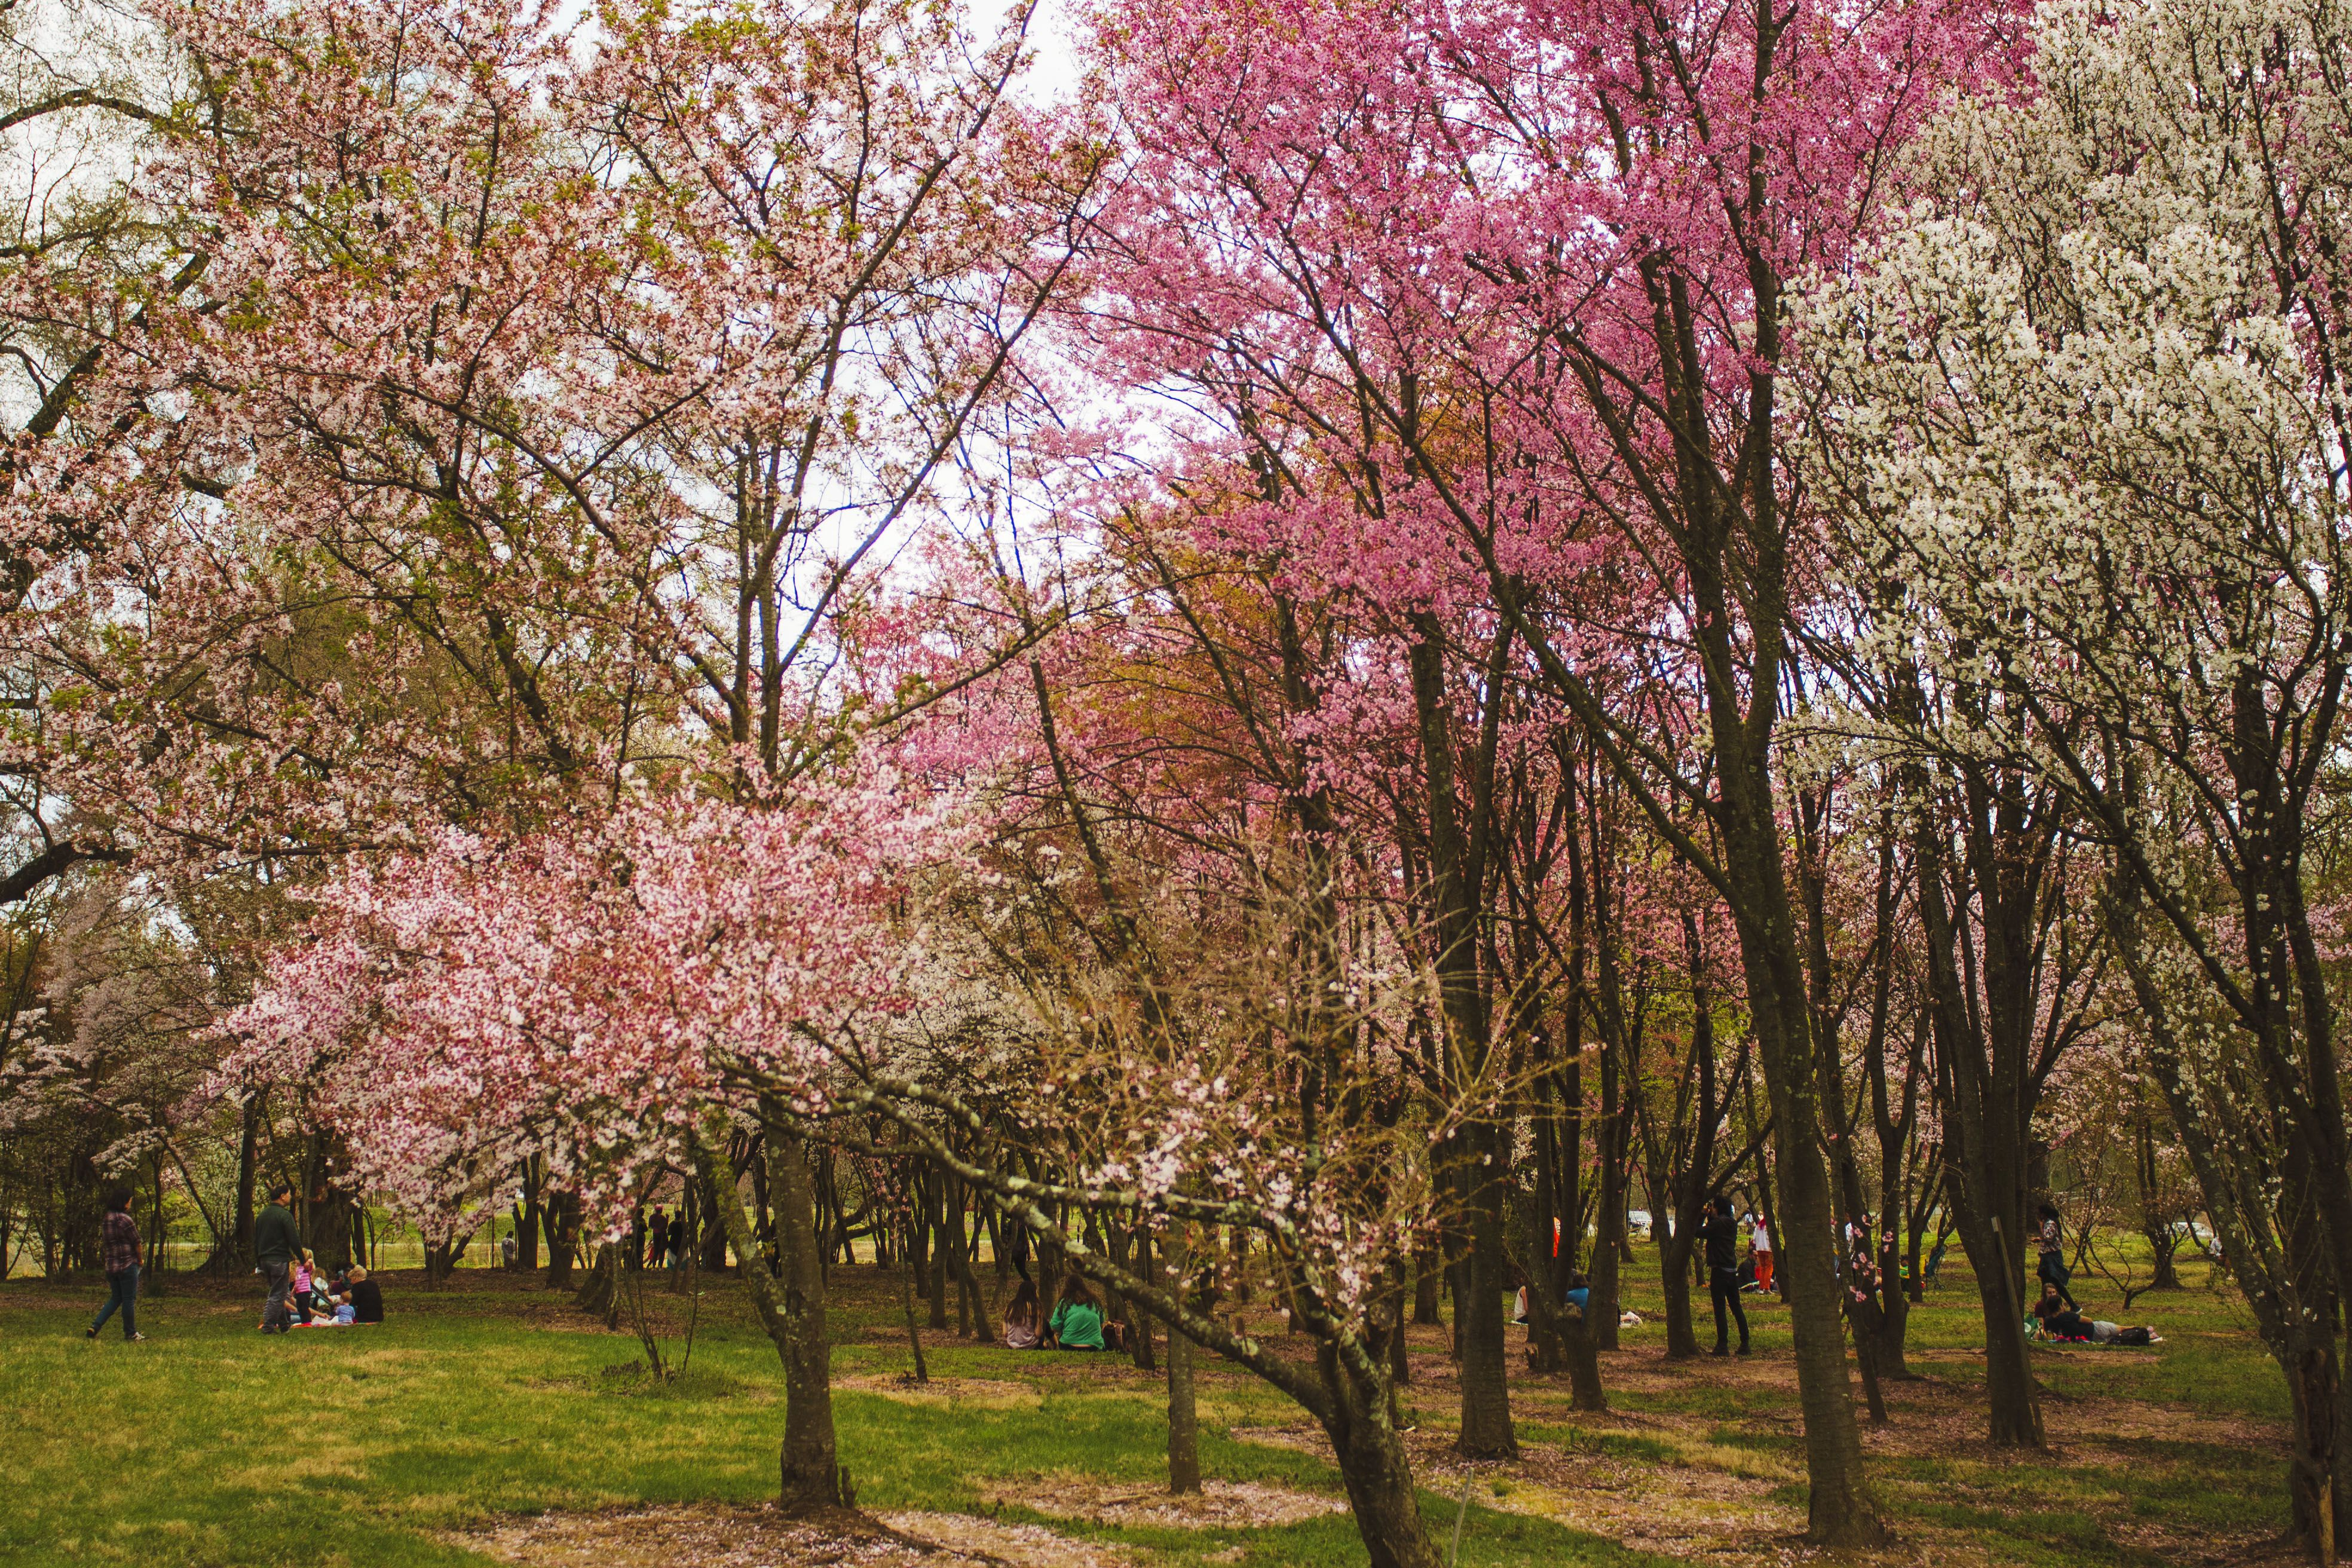 Trees with cherry blossoms in the National arboretum